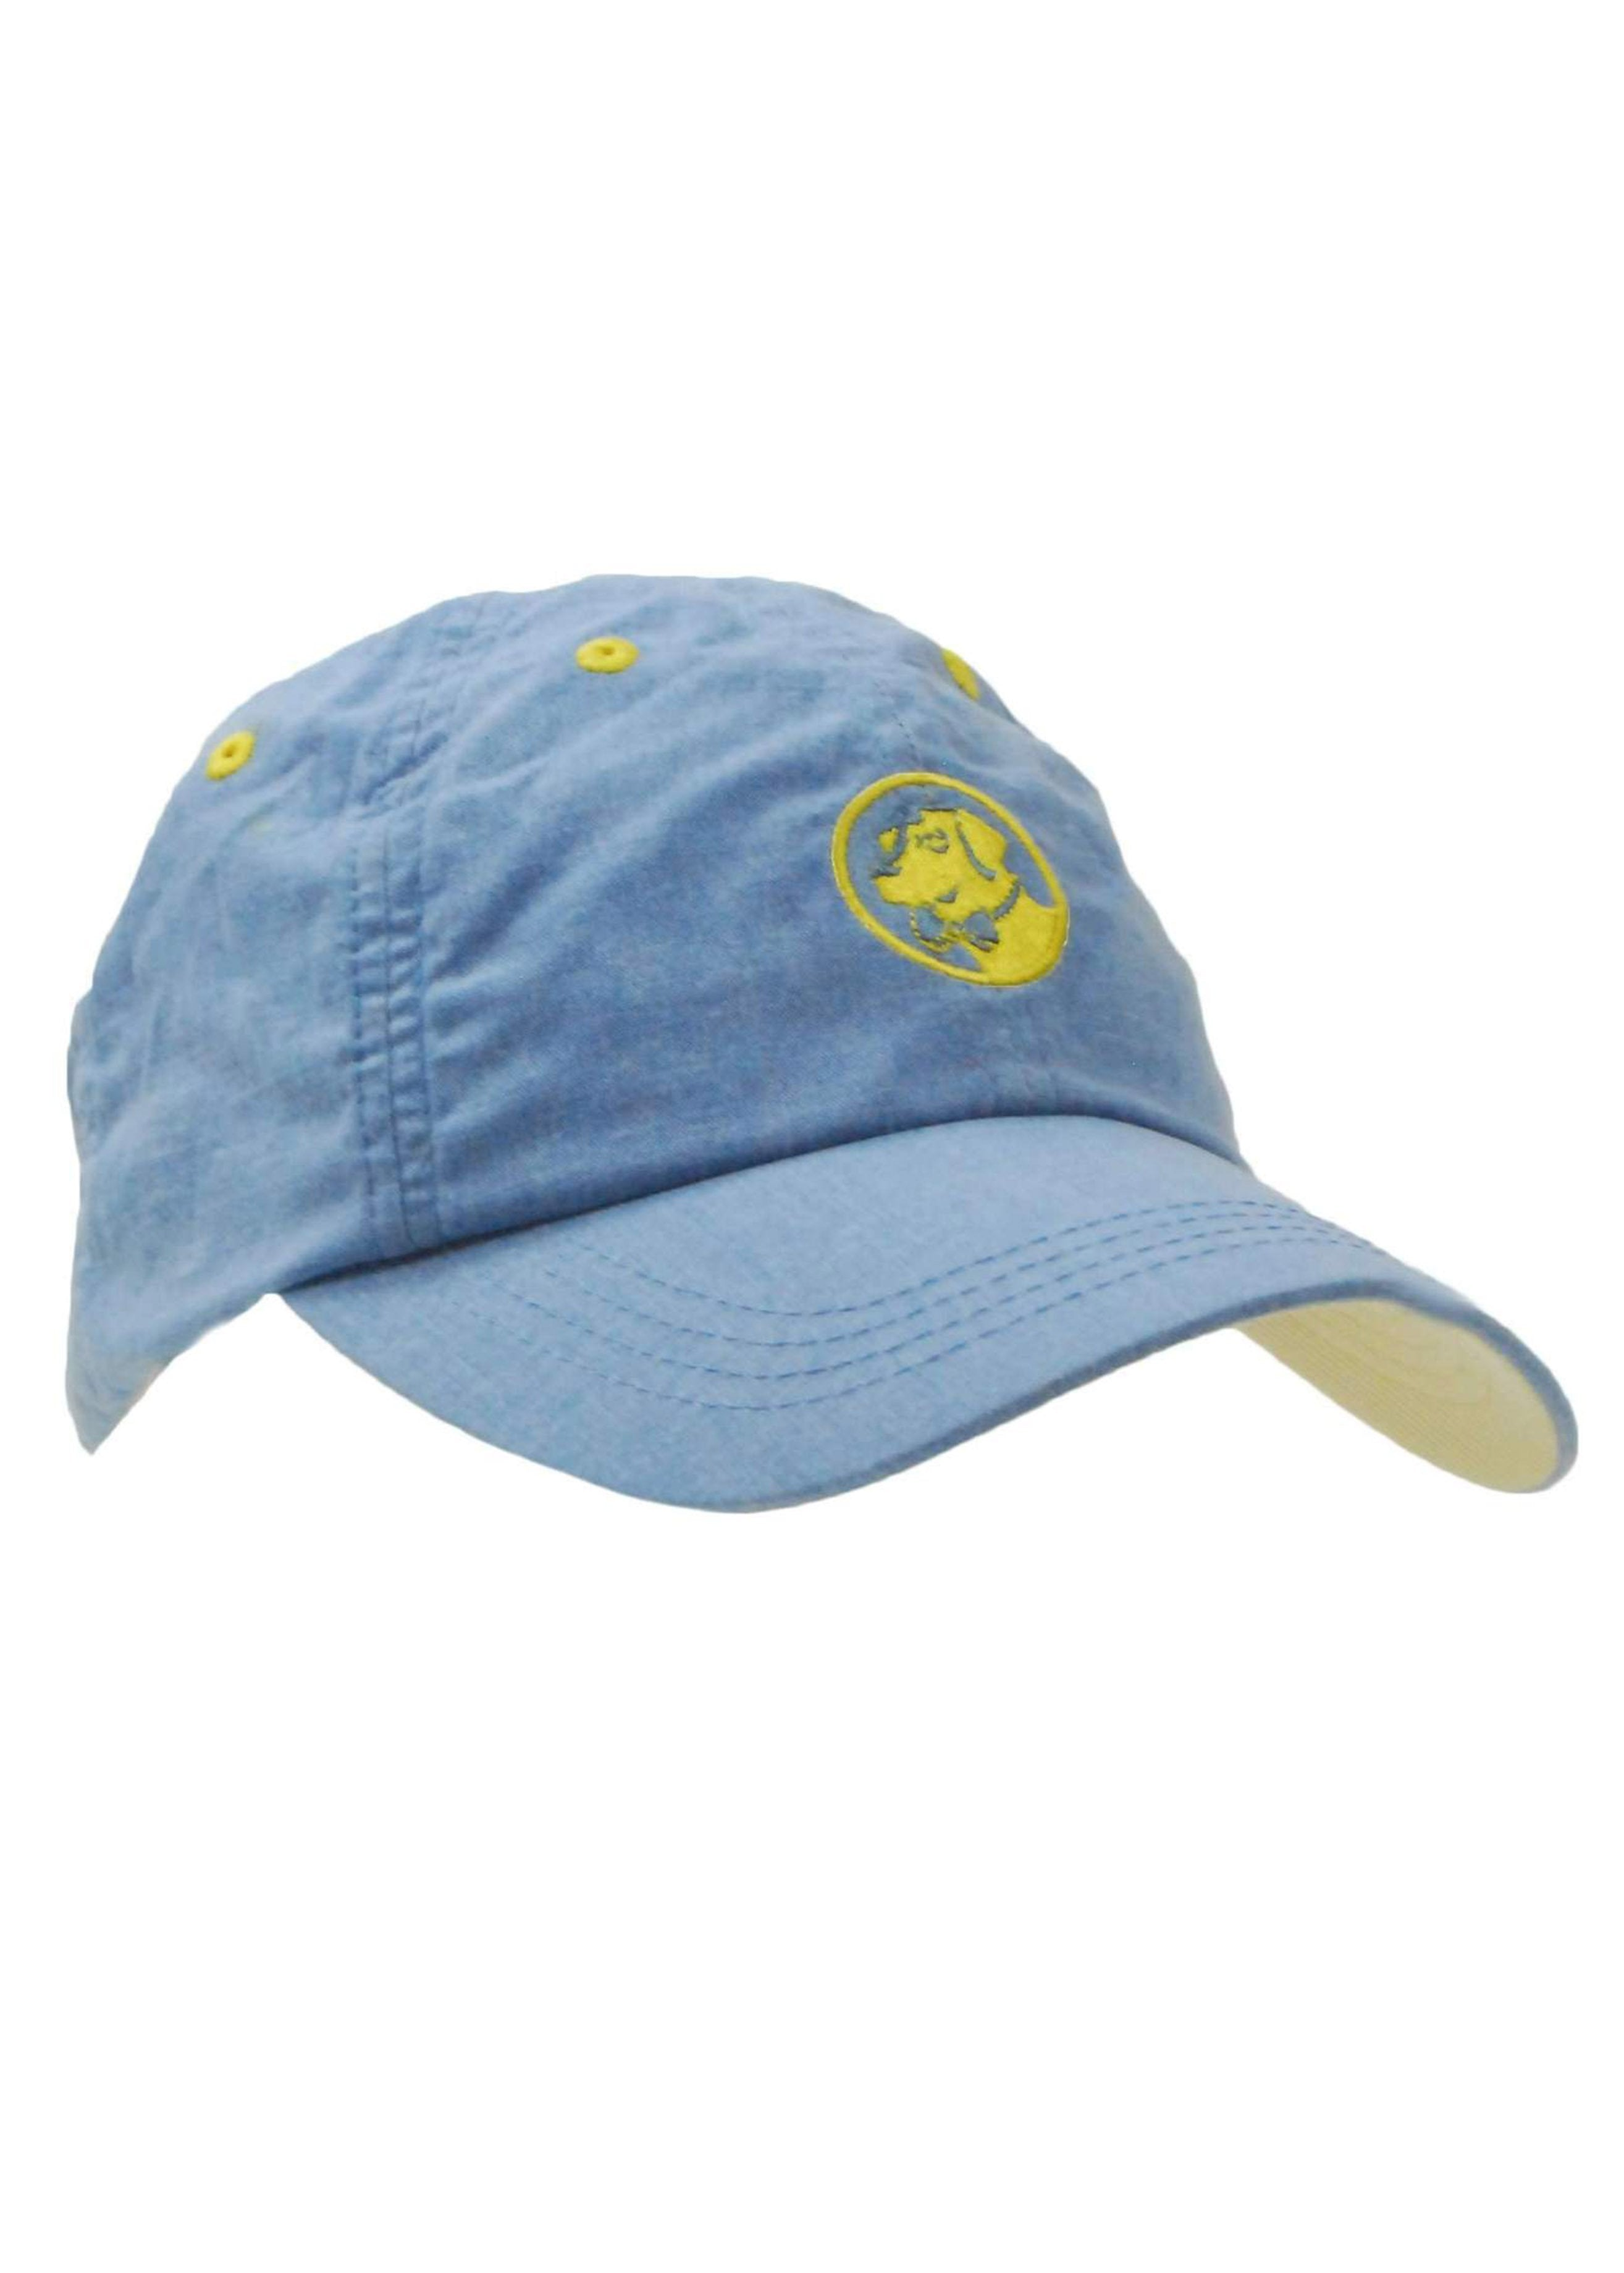 7a40c92c50c8 Southern Proper Summer Weight Hat